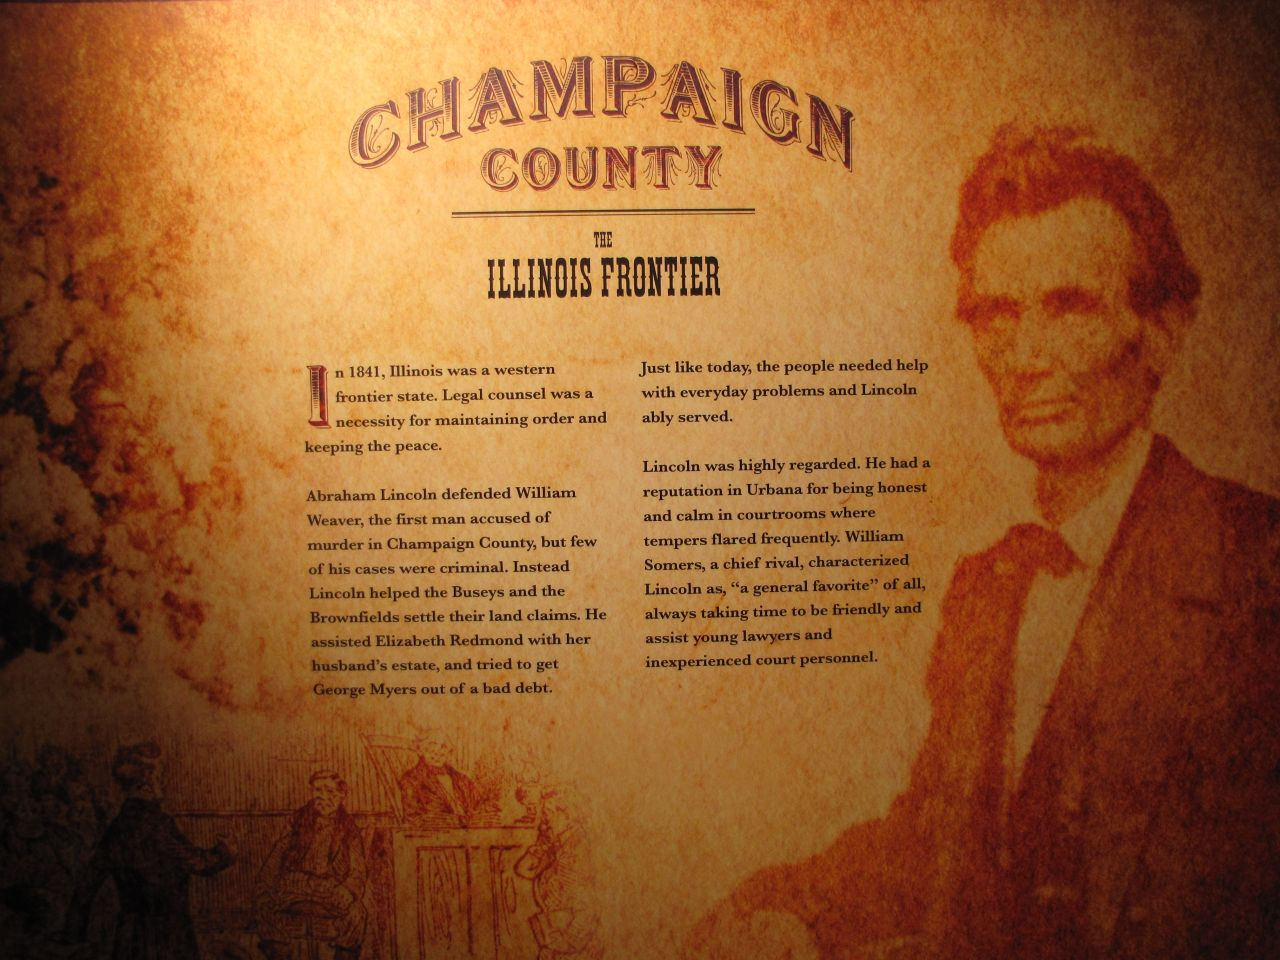 A chronicle of Lincoln's visits to Champaign County.